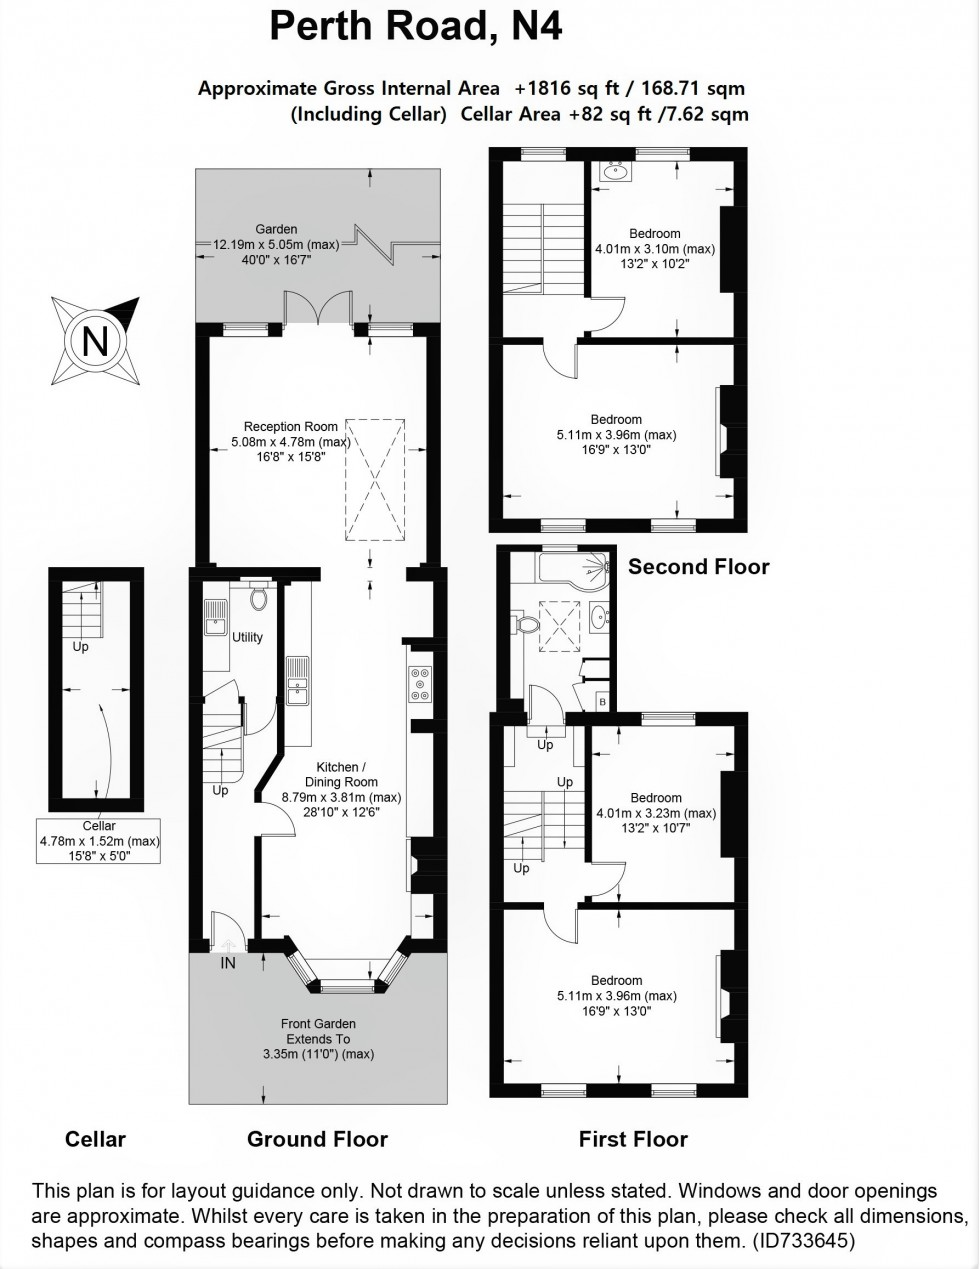 Floorplan for Perth Road, N4 3HB